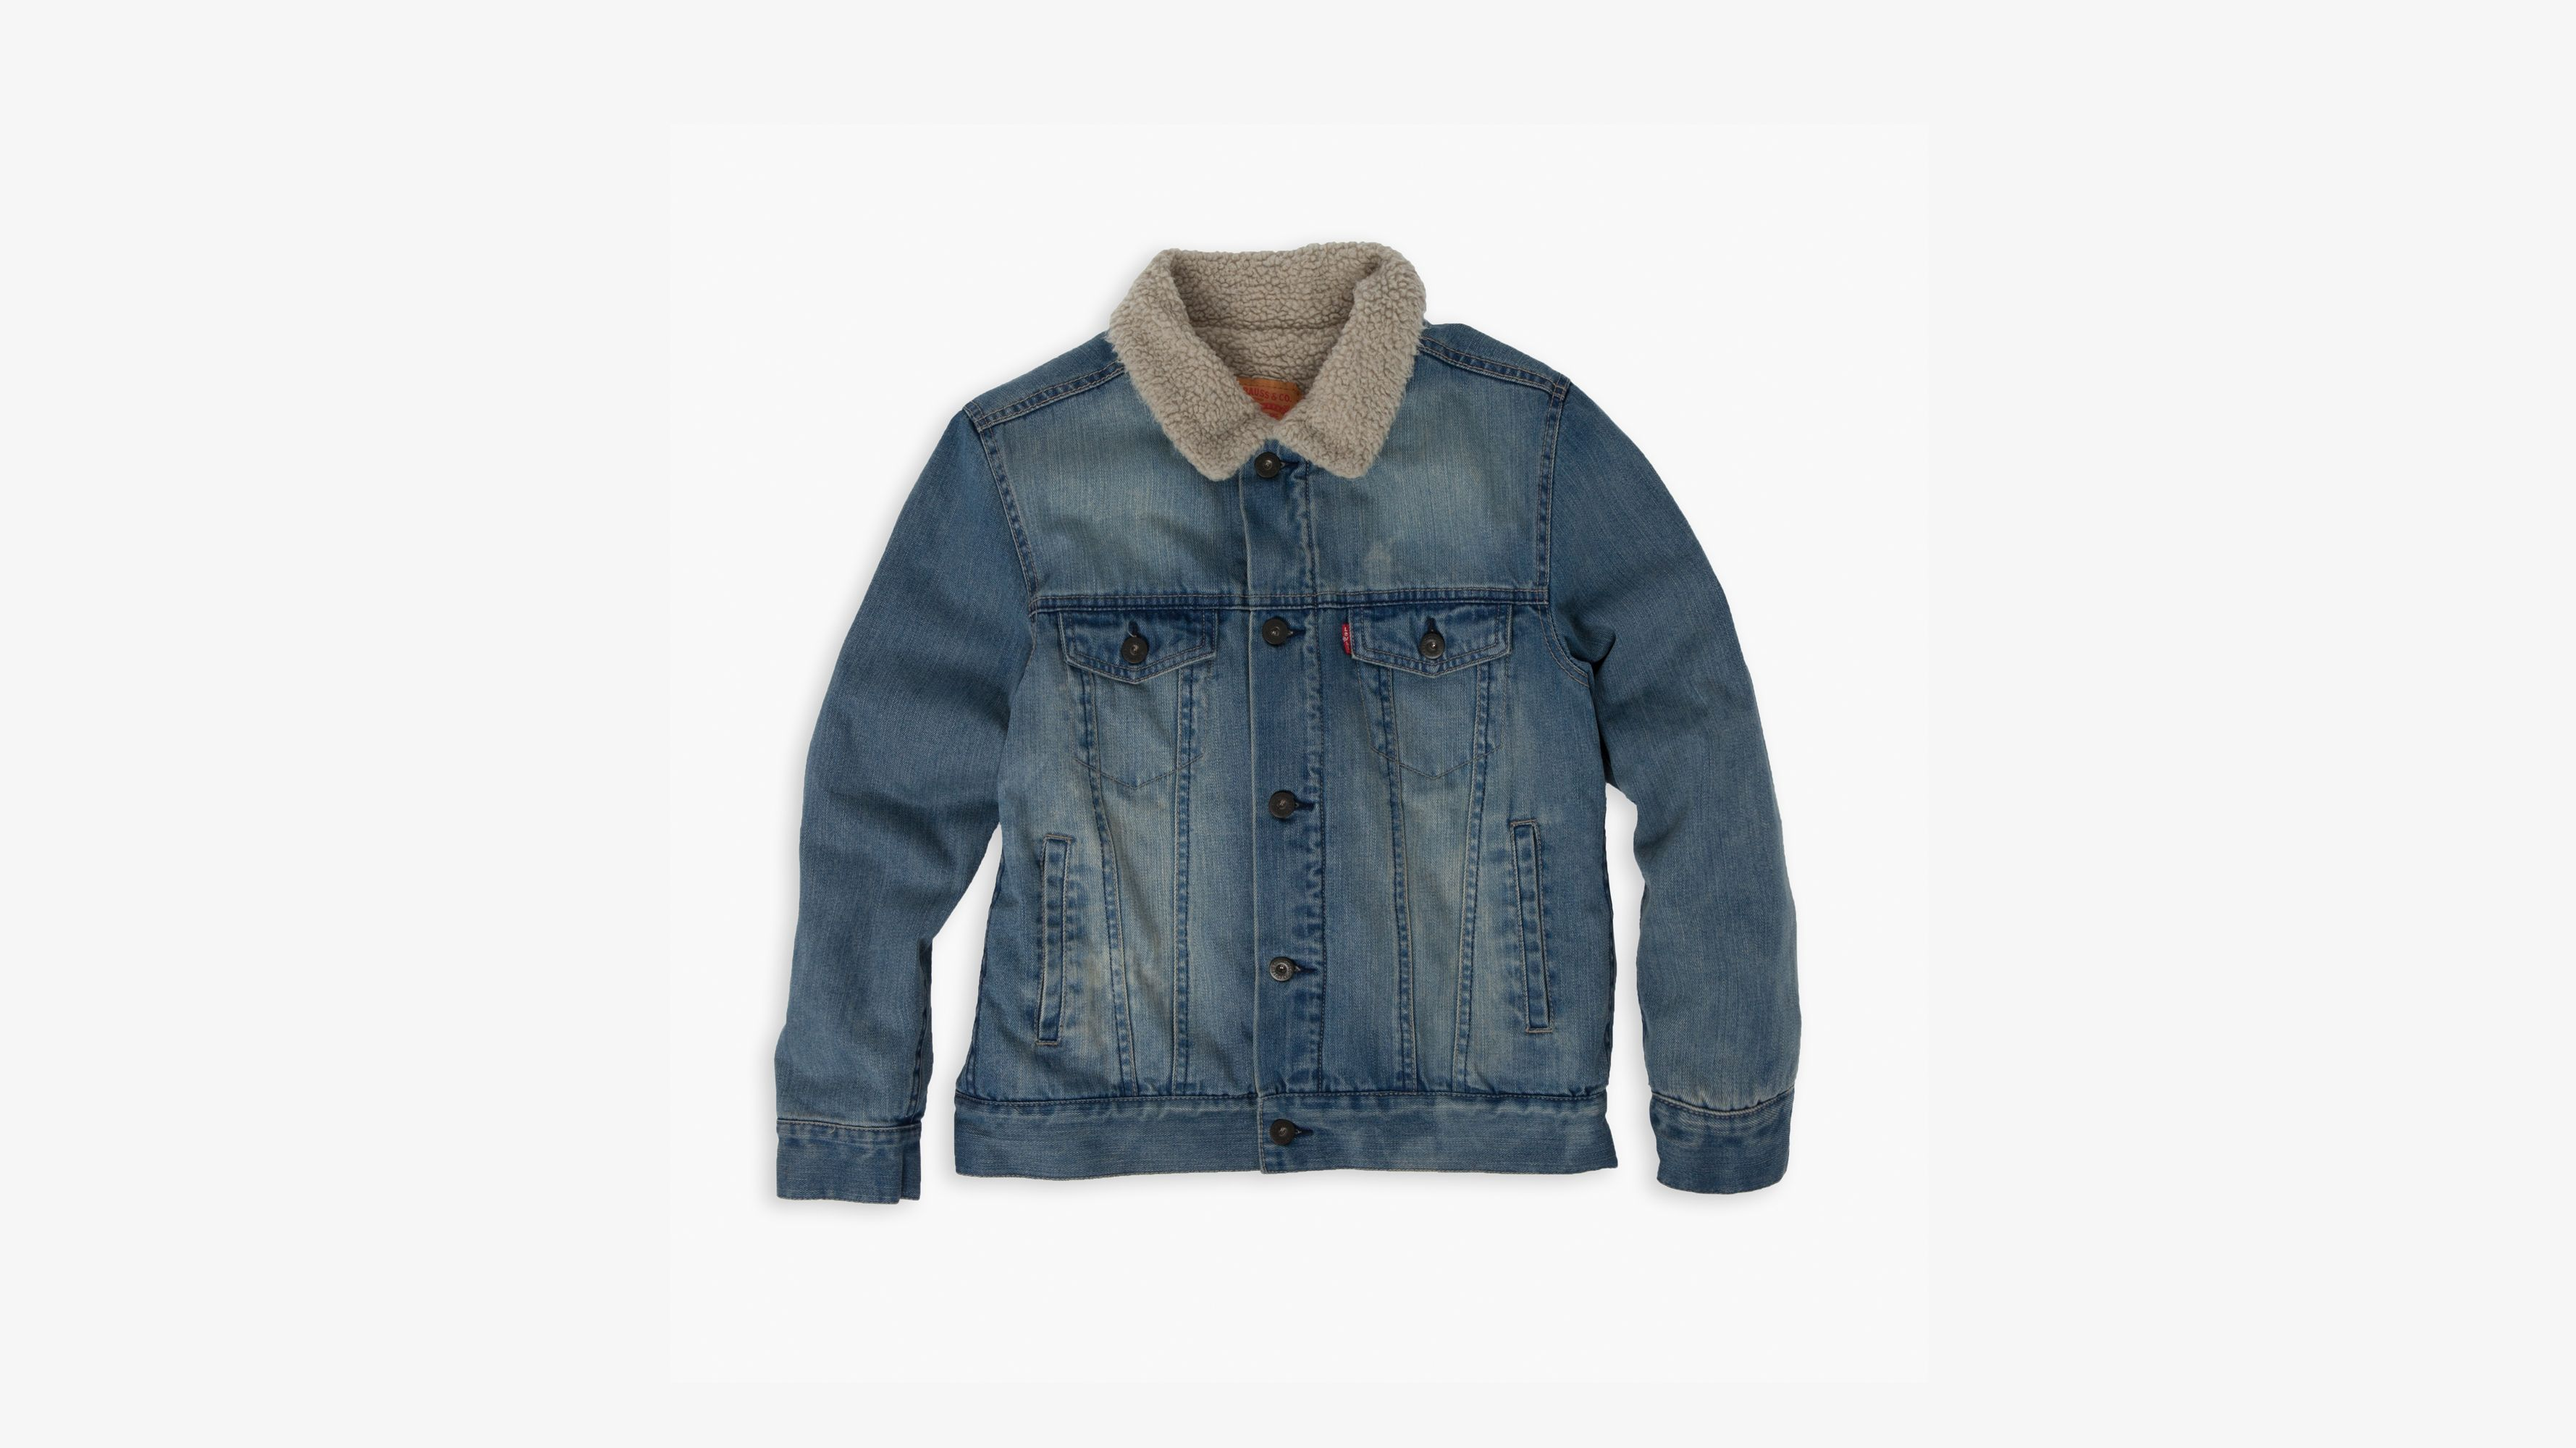 971b0f34 Big Boys Sherpa Trucker Jacket - Medium Wash | Levi's® US